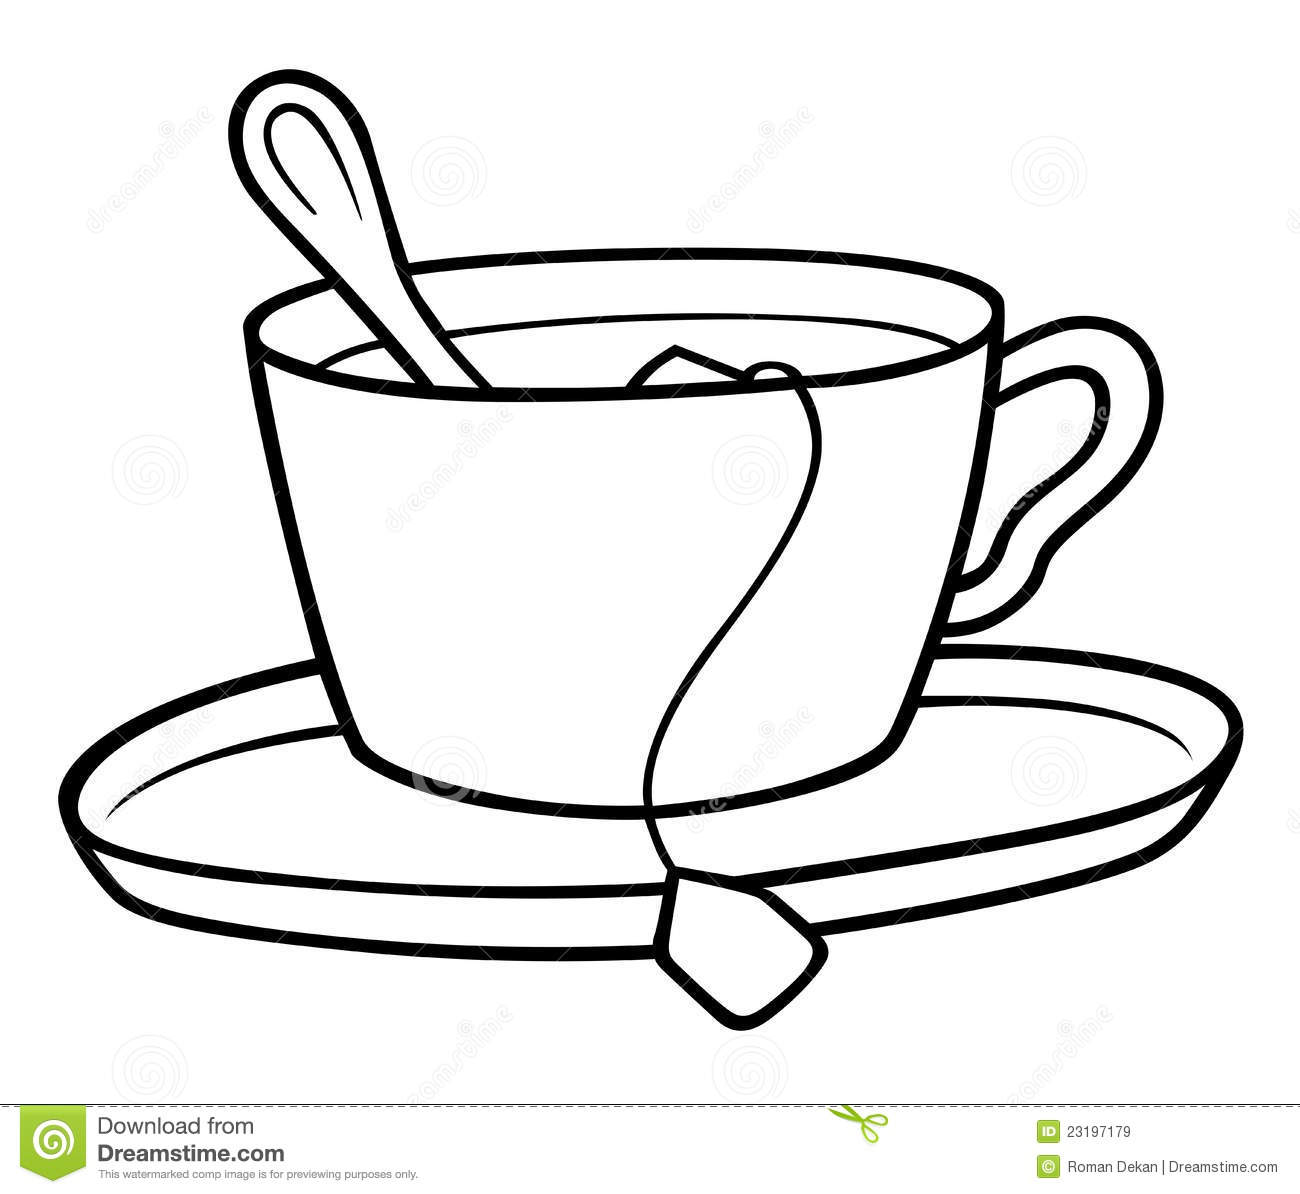 tea cup clipart black and white - photo #17